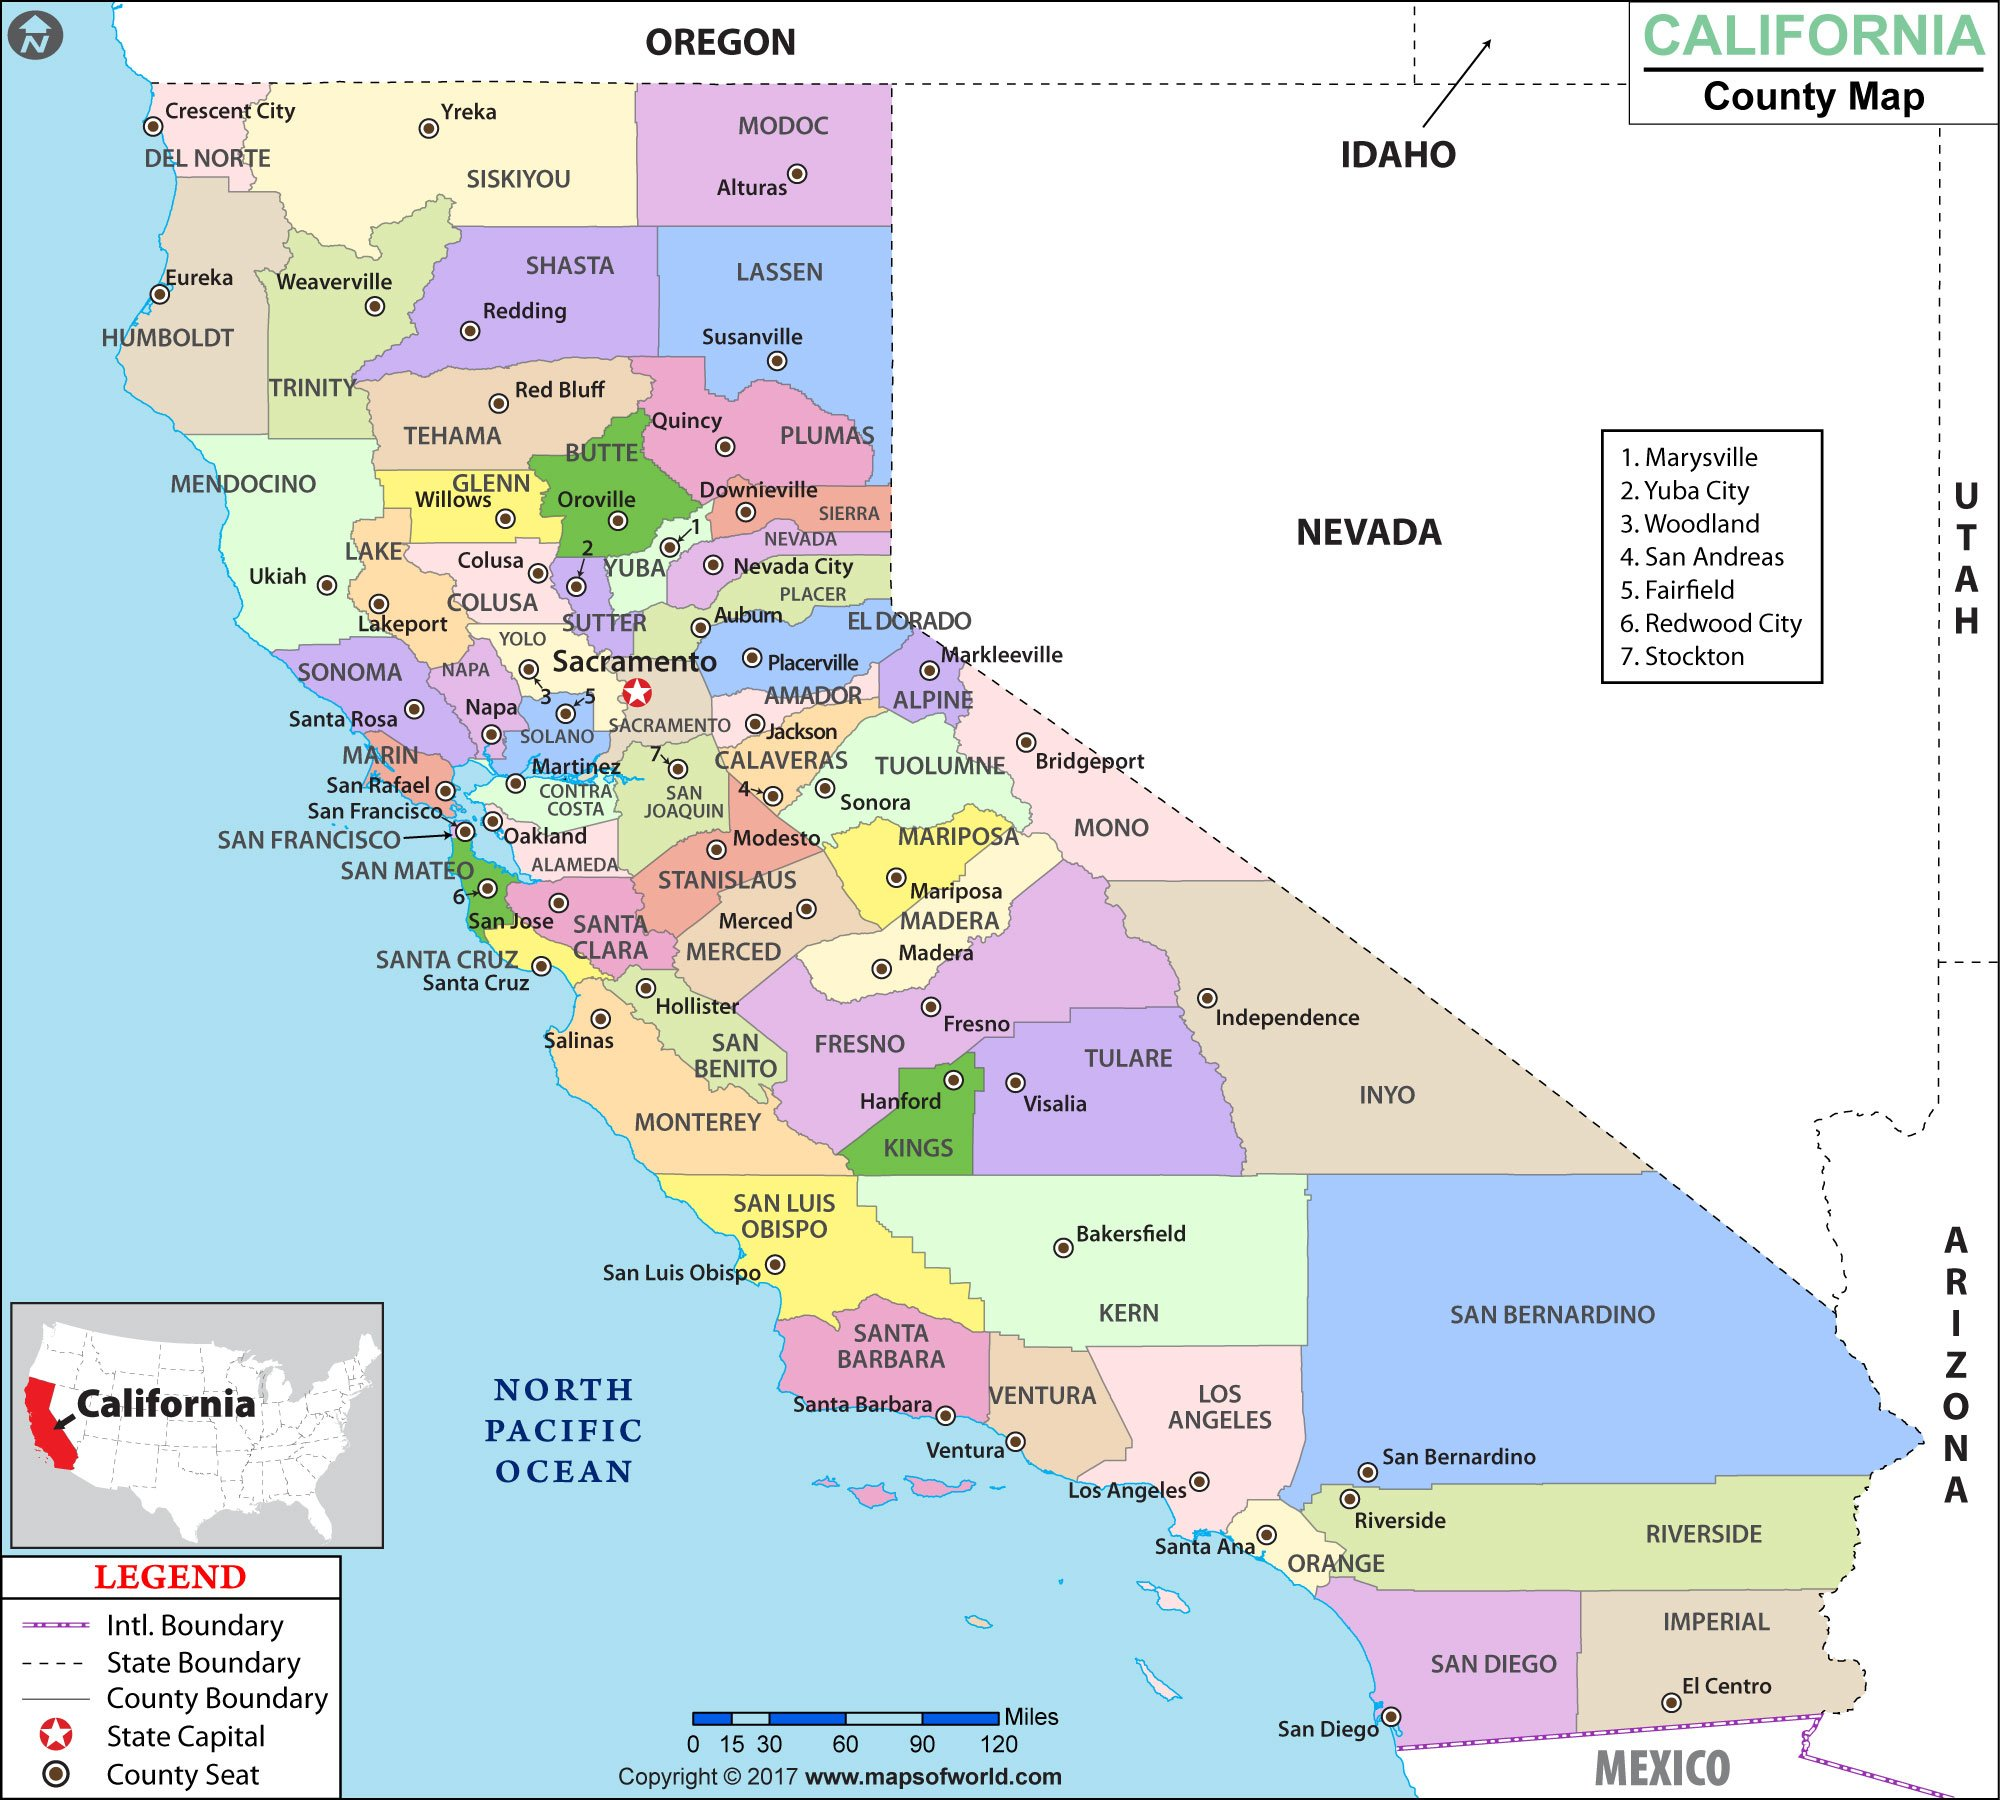 California County Map (60'' W x 54'' H)